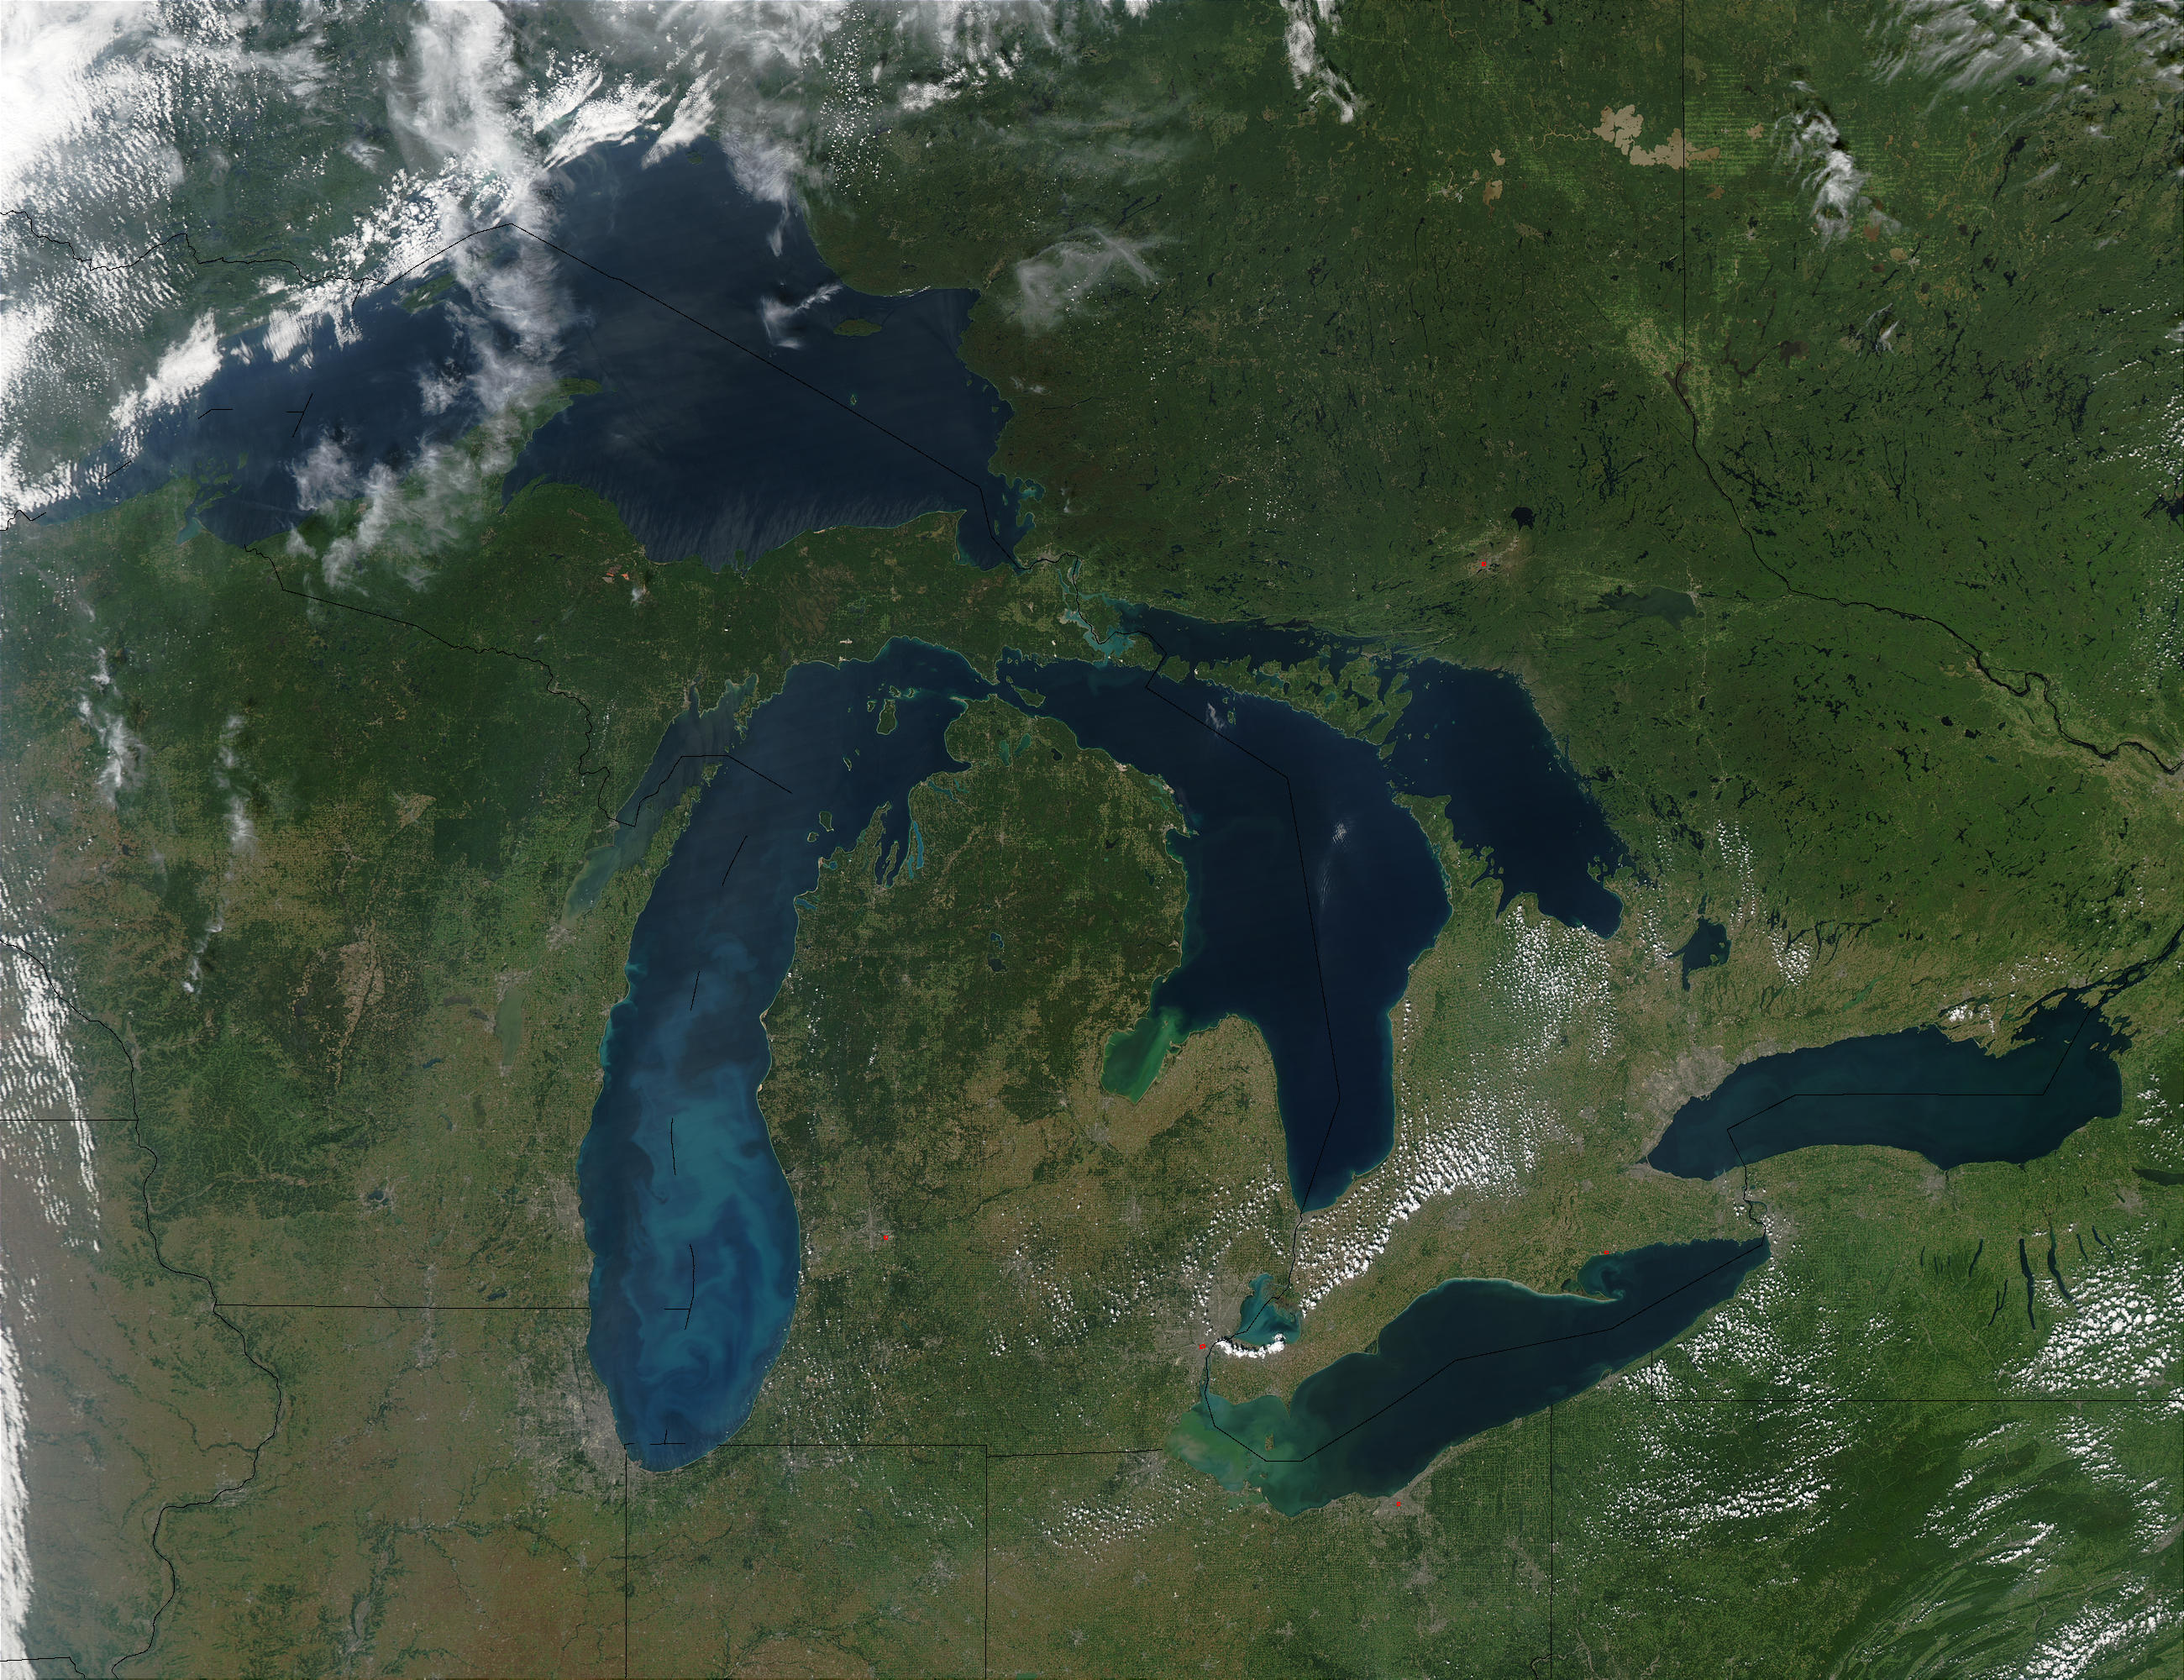 http://eoimages.gsfc.nasa.gov/images/imagerecords/68000/68562/GreatLakes.A2003260.1830.500m.jpg